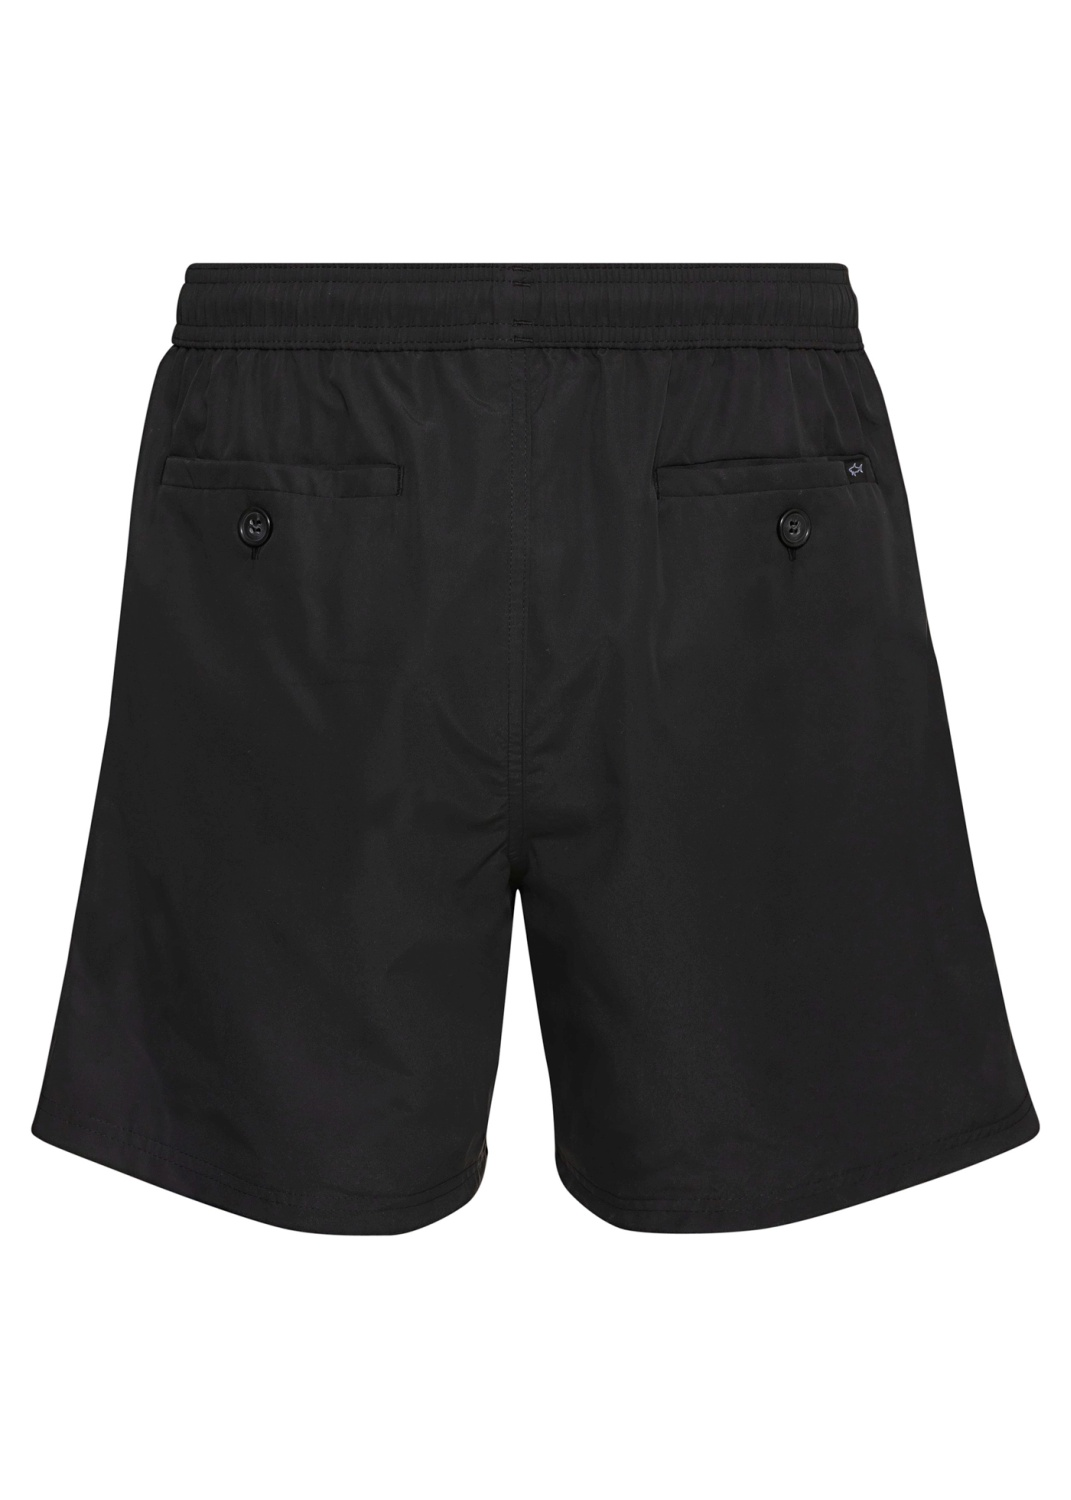 MEN'S WOVEN SWIMM. TRUNKS - C.W. SYNTHETIC image number 1